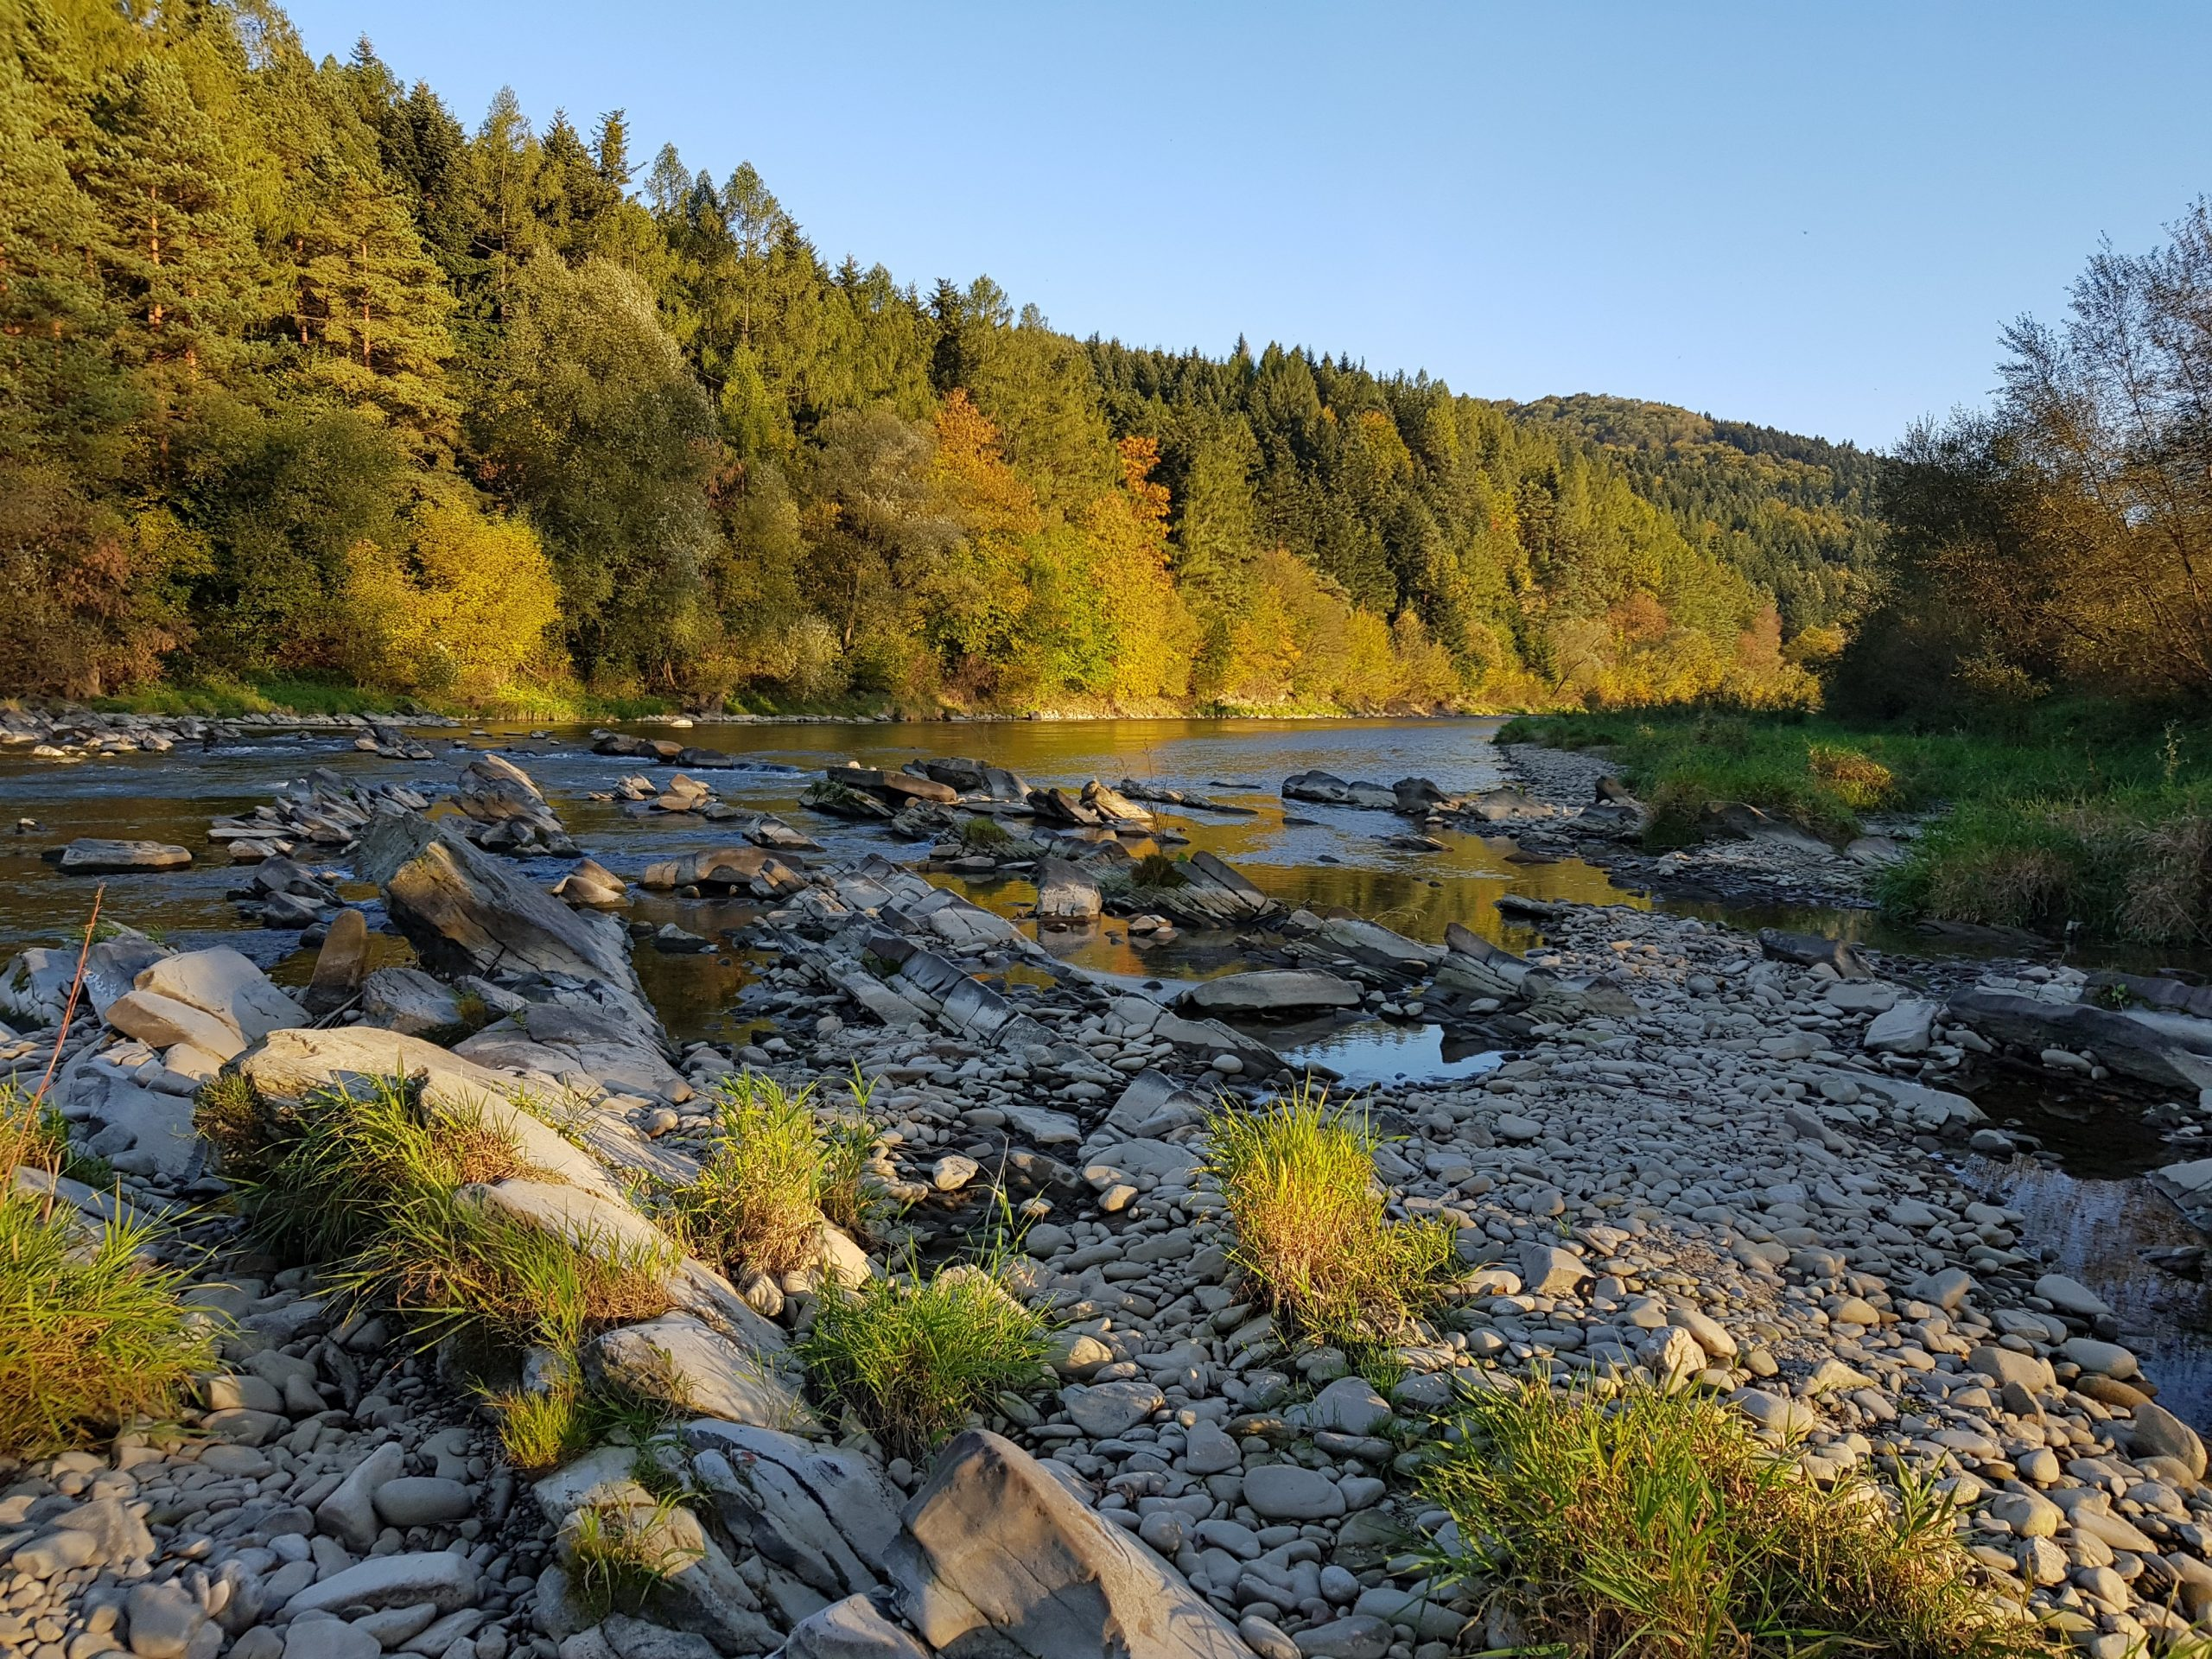 Catch & release stretch, perfect for dry fly fishing in autumn